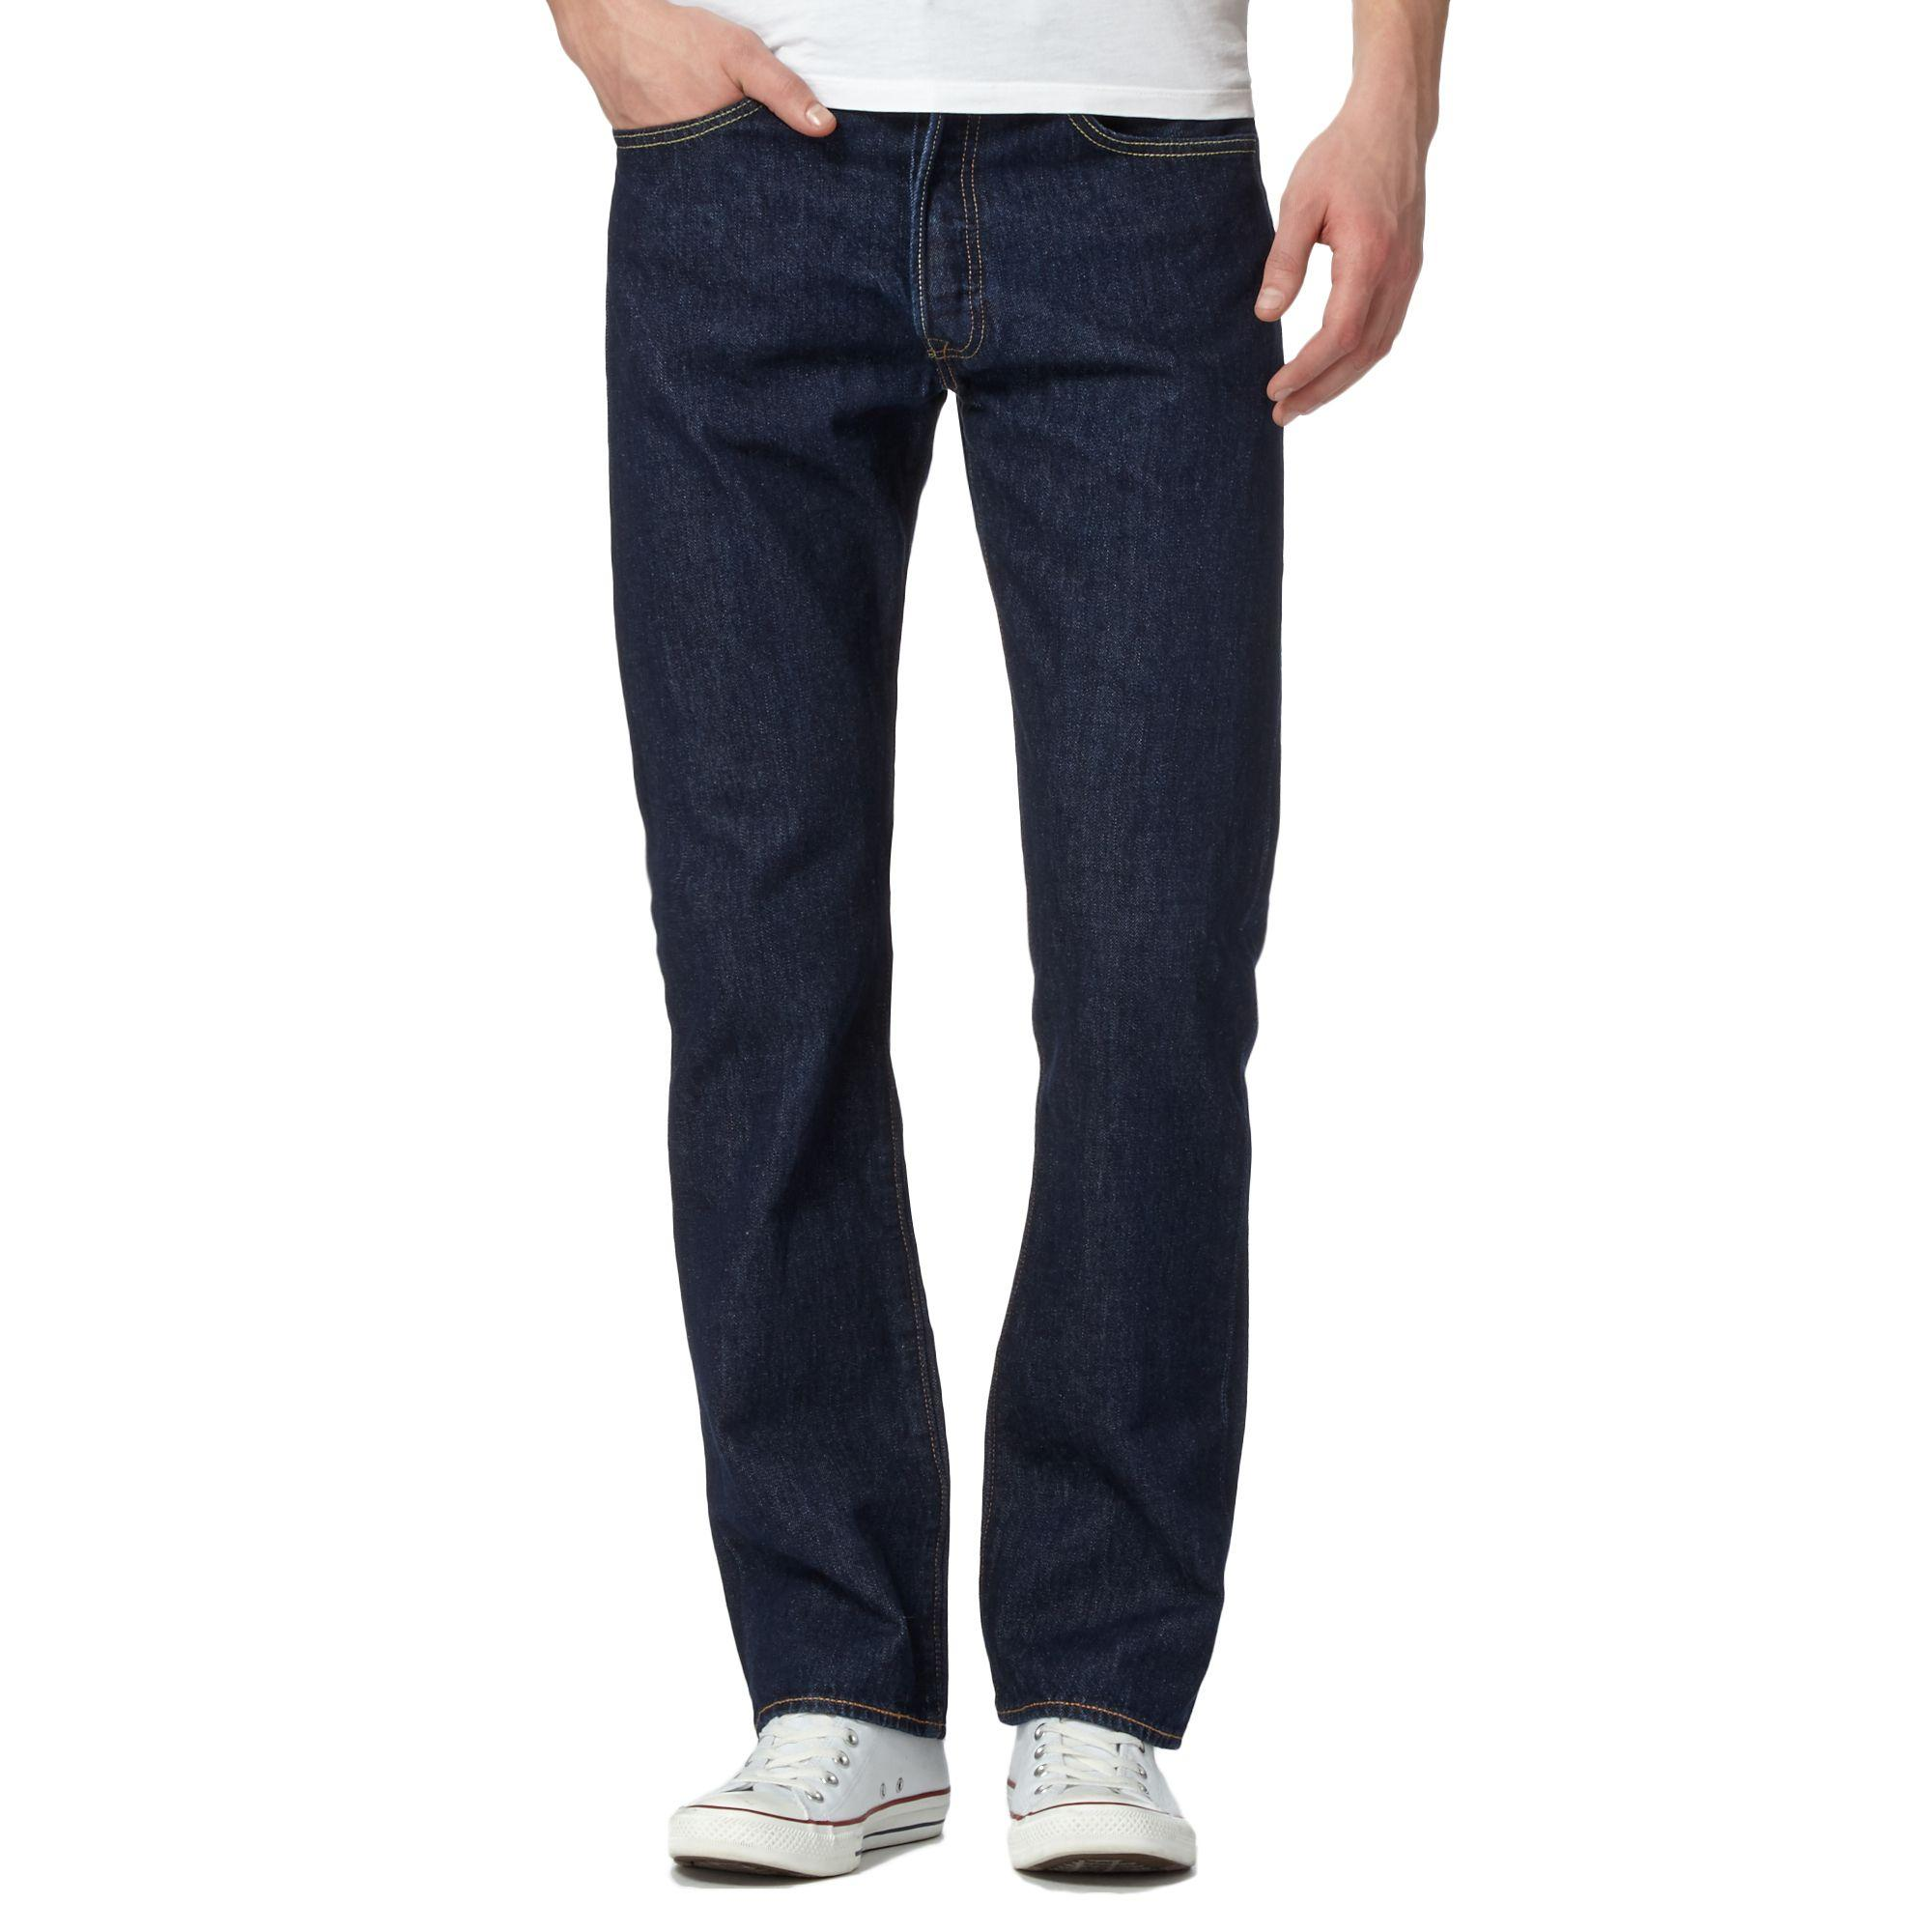 32f0430d9bc ... Levi's - Big And Tall Dark Blue One Wash '501' Straight Jeans for Men.  Visit Debenhams. Tap to visit site